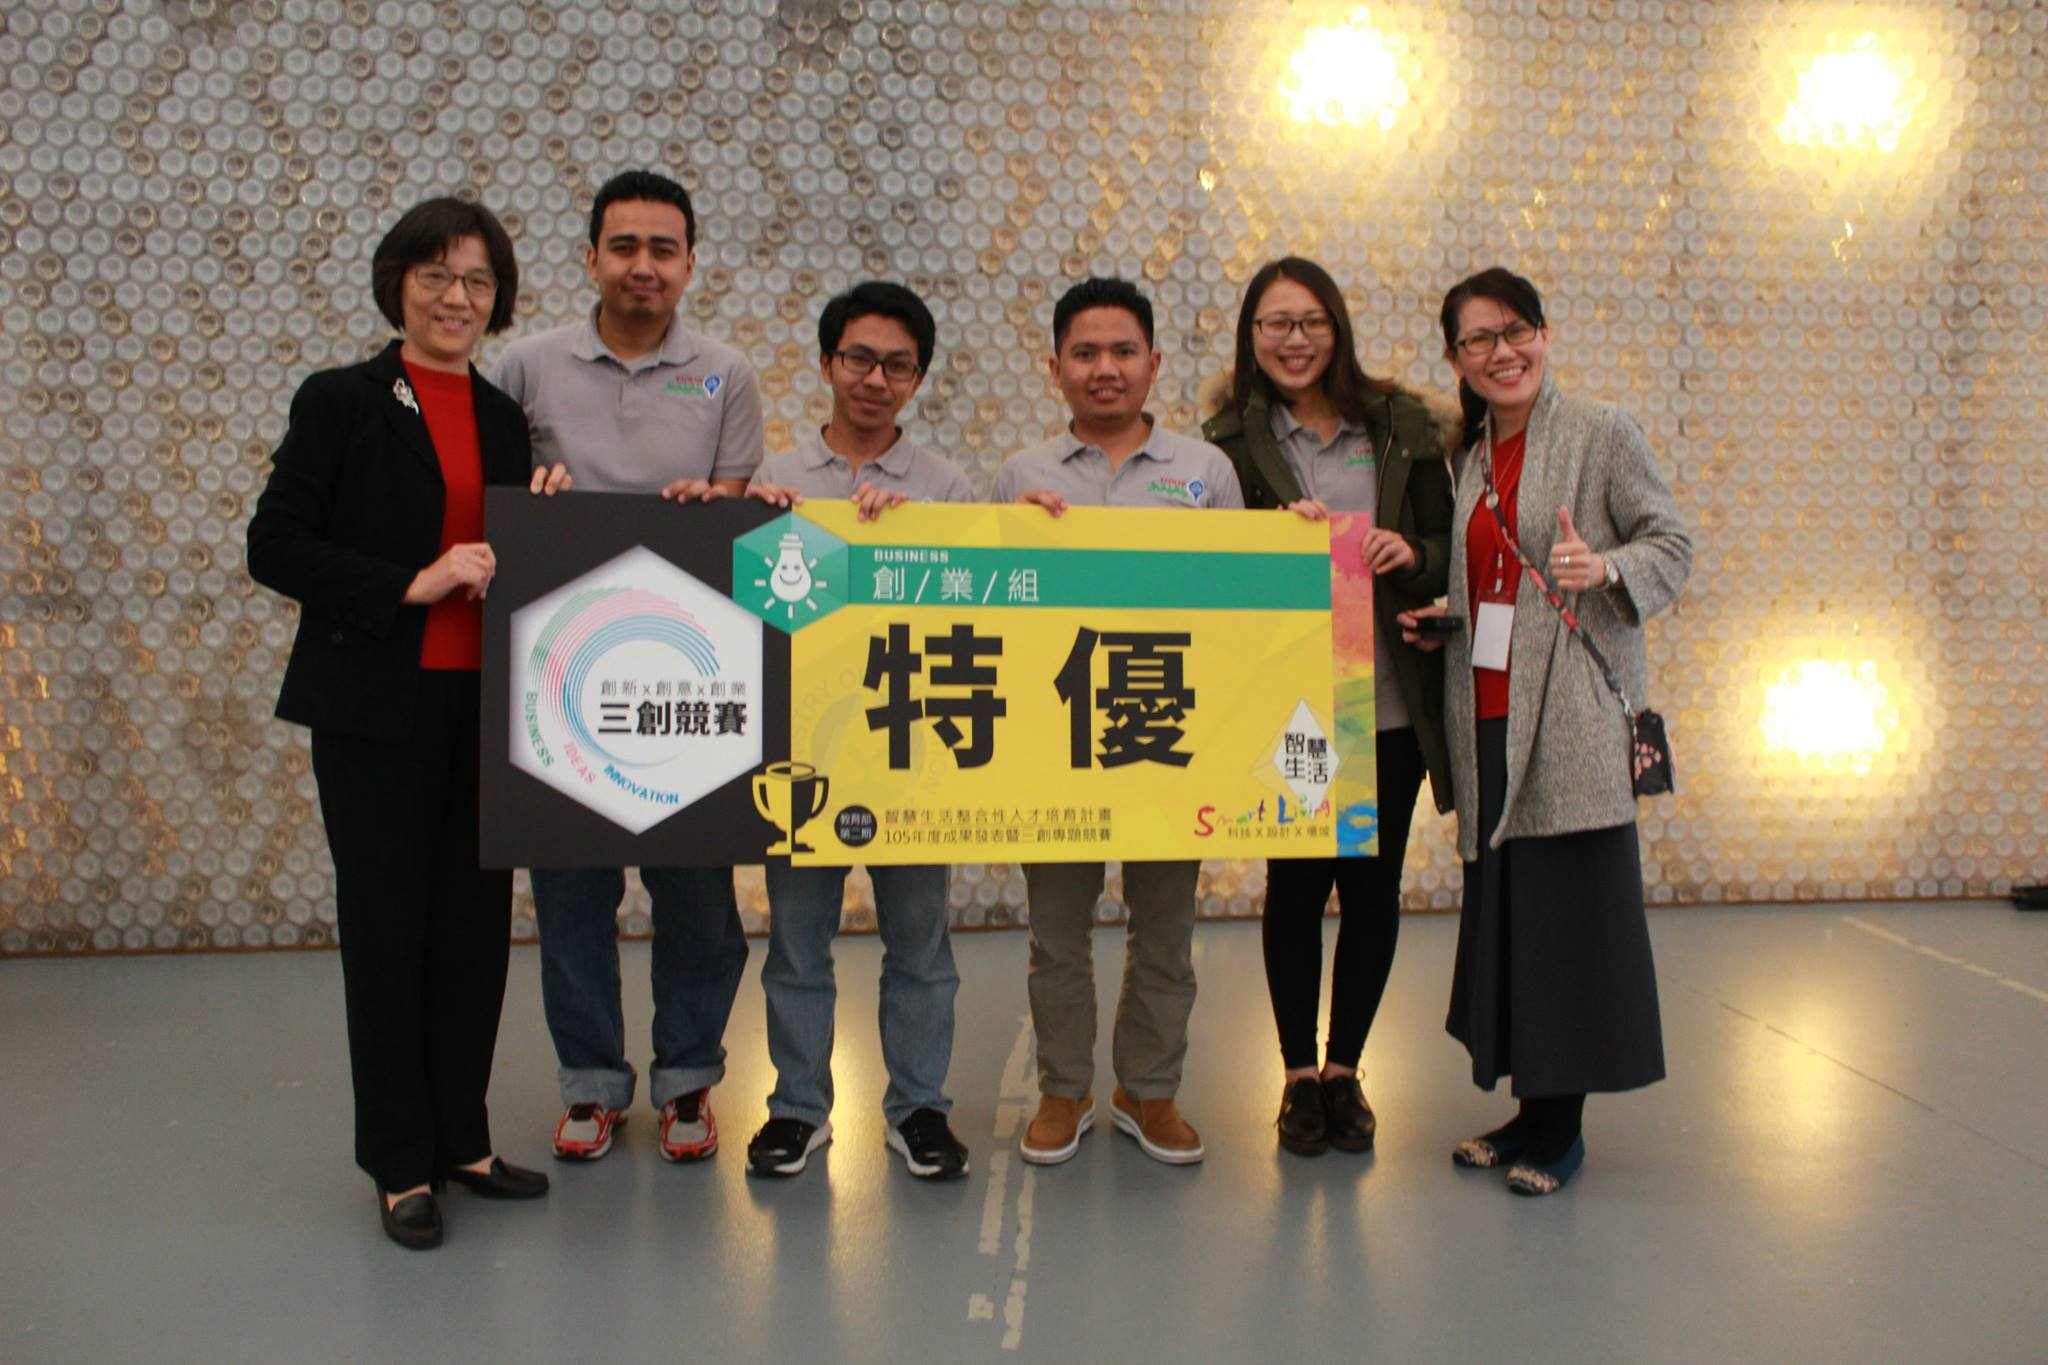 Taiwan Halal won Smart Living Competition 2017 held by Ministry of Education